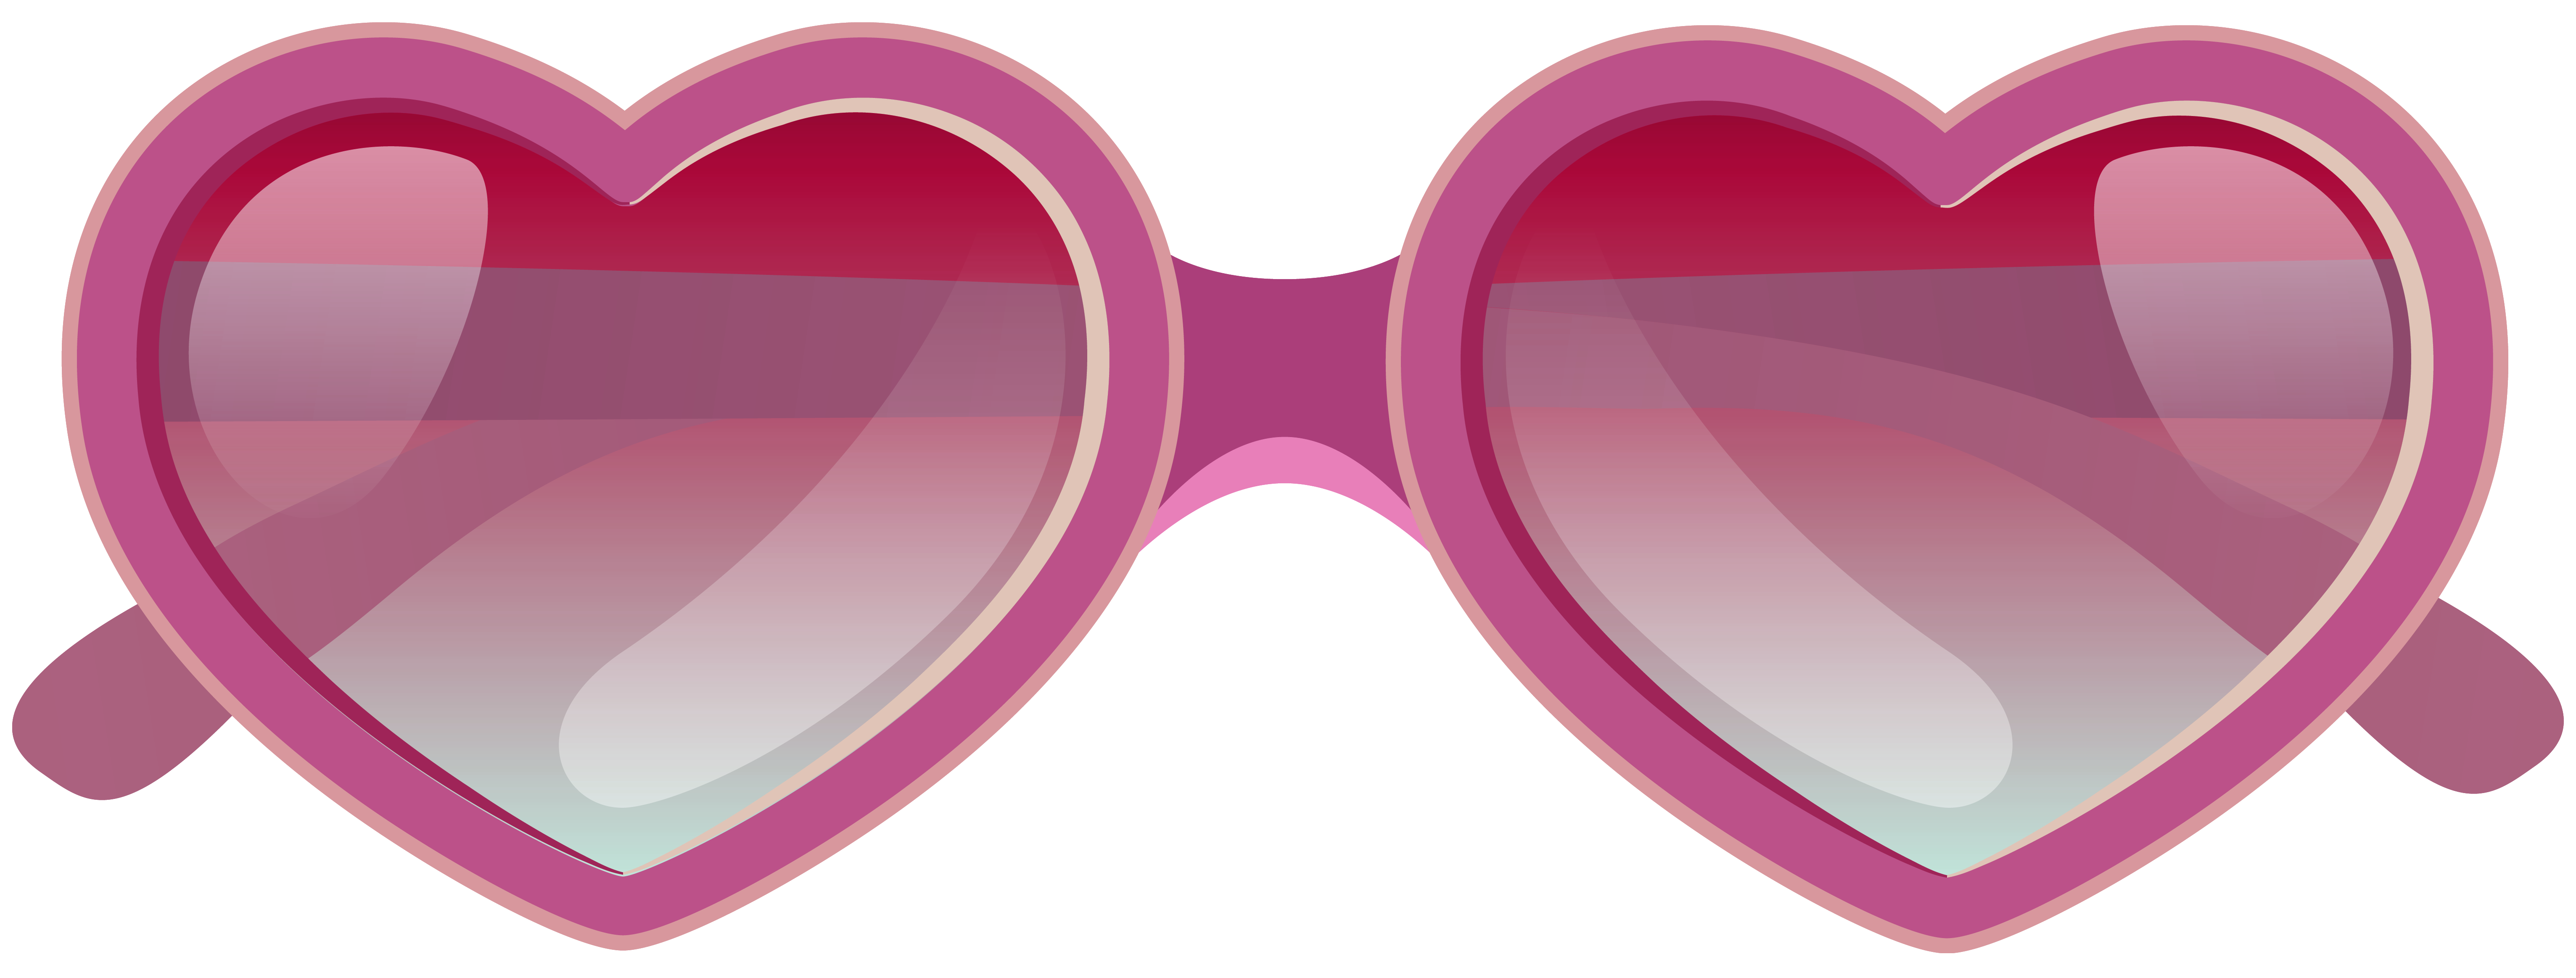 Pink Heart Sunglasses PNG Clipart Image.